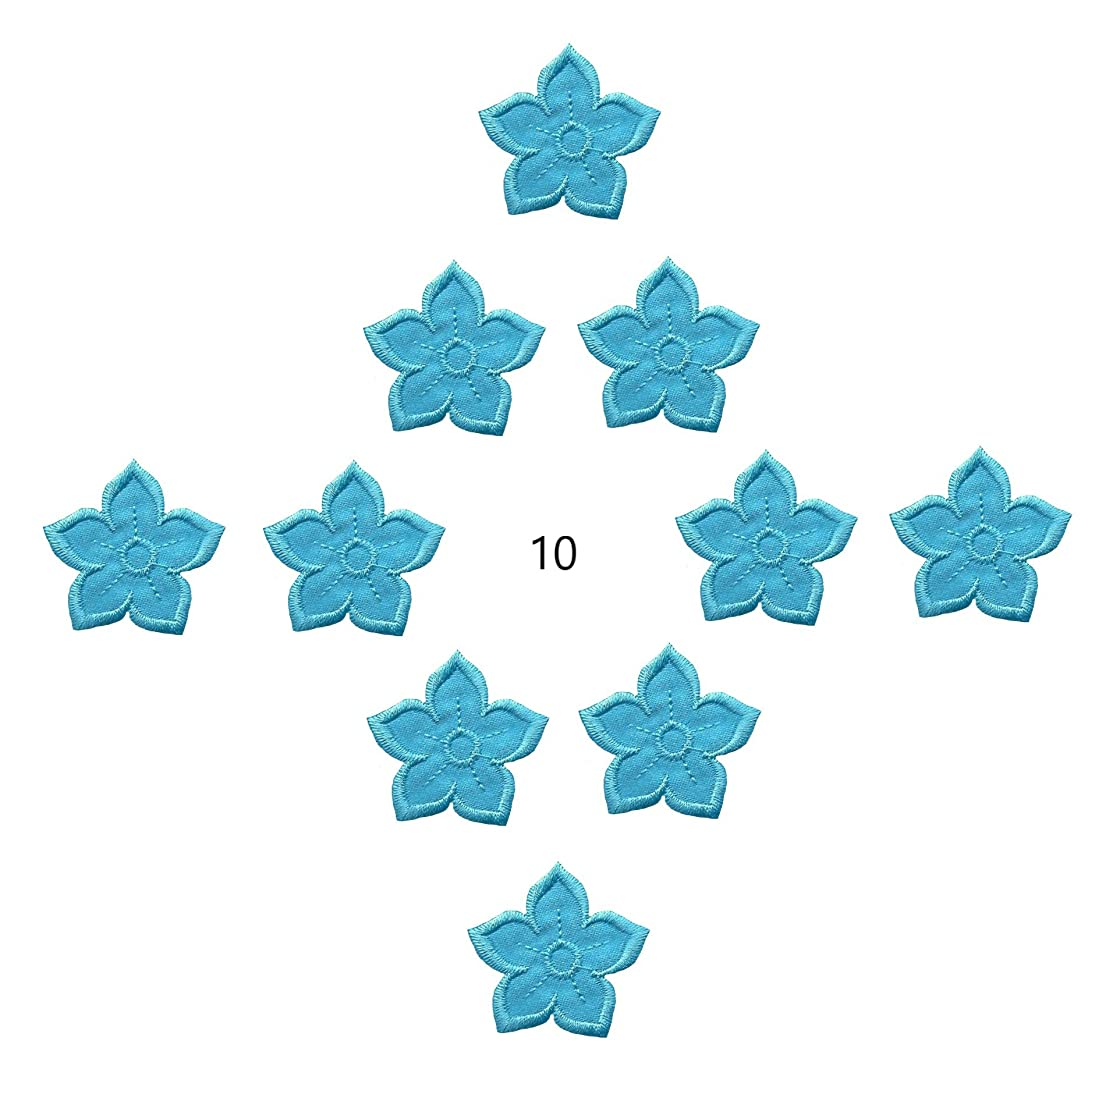 A-105, Turquoise Flower Iron On Patch 10 Pieces, Embroidered, Decorative Patches, Fashion Set-